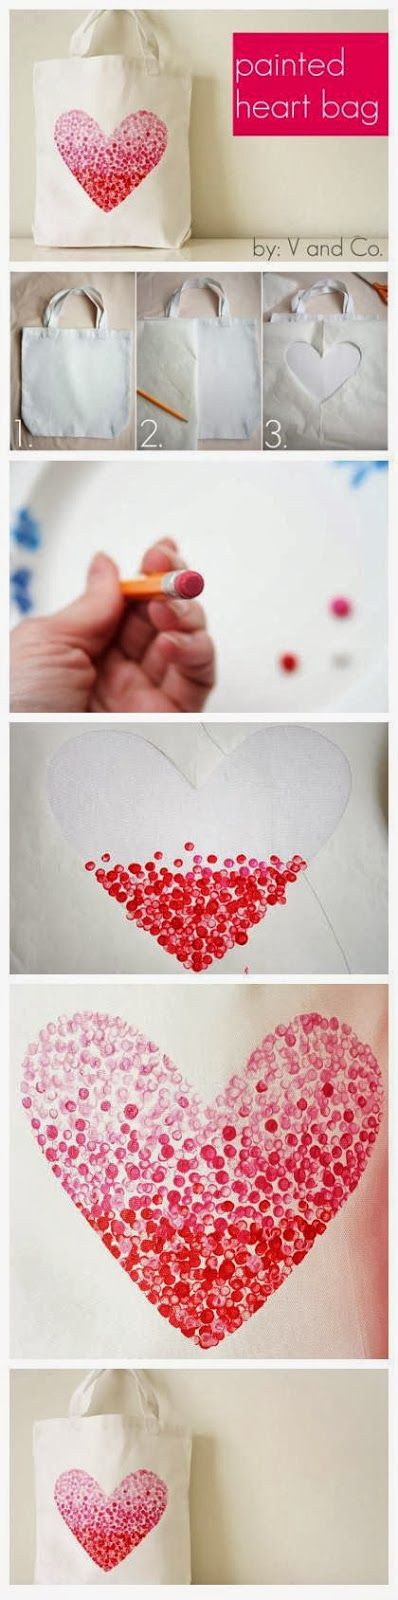 DIY : Painted Heart Bag  That bag looks  really nice and attractive. In fact, you can make such one really  easily. Just use an ordina...